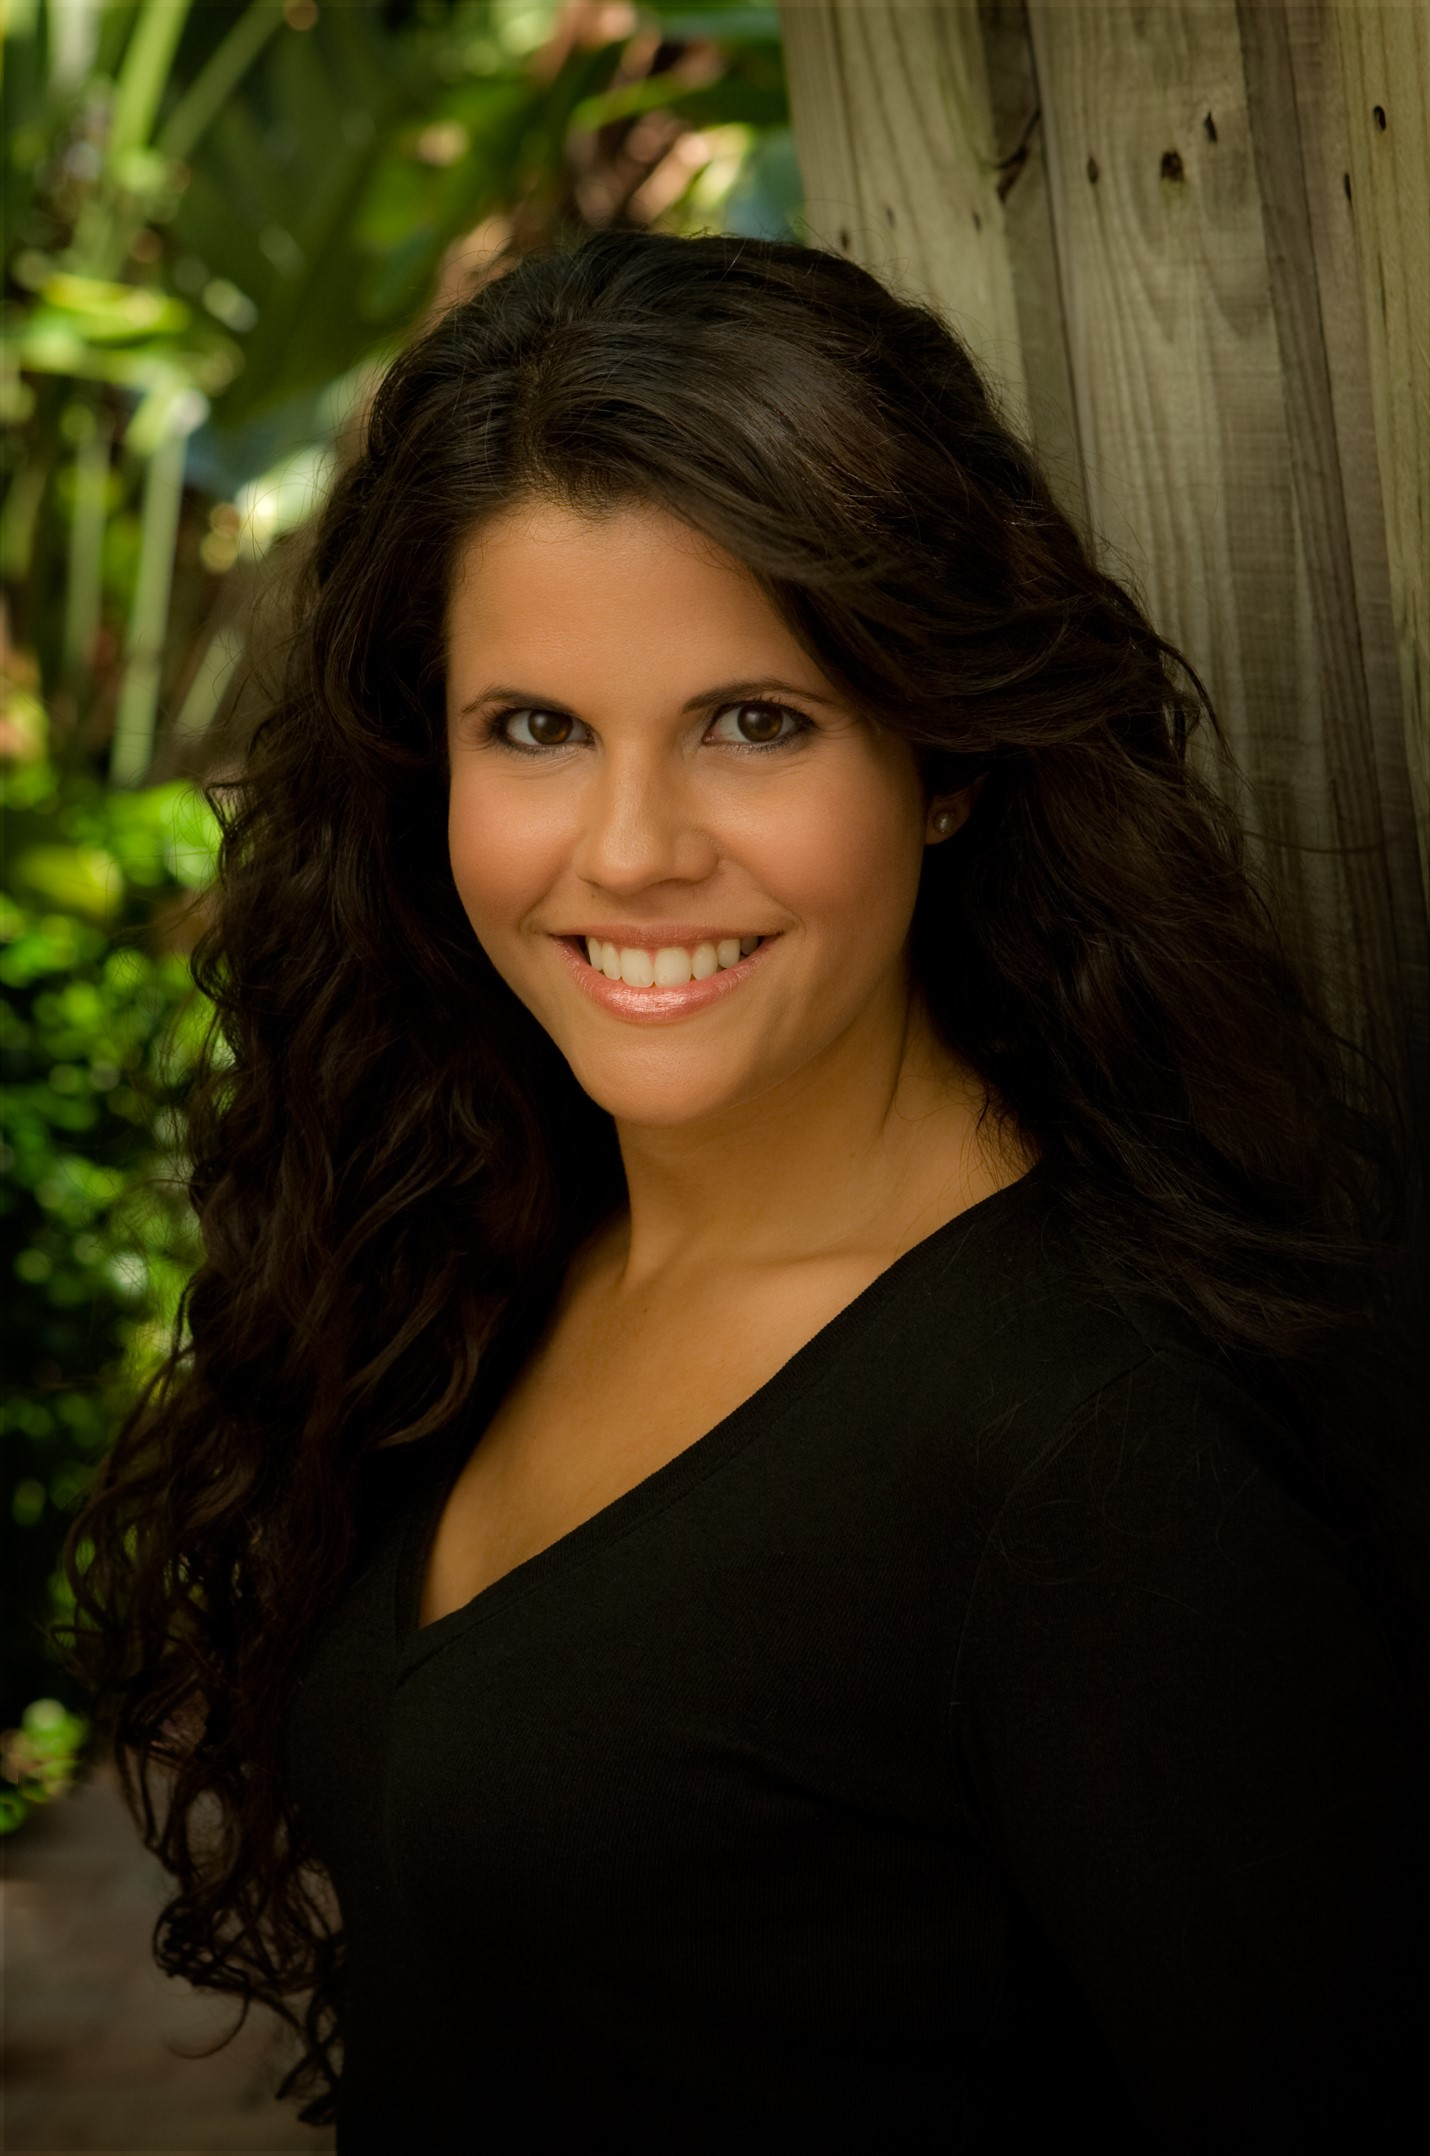 Soprano Noemí de Silva. Photography courtesy of Paula P. Boone Photography.